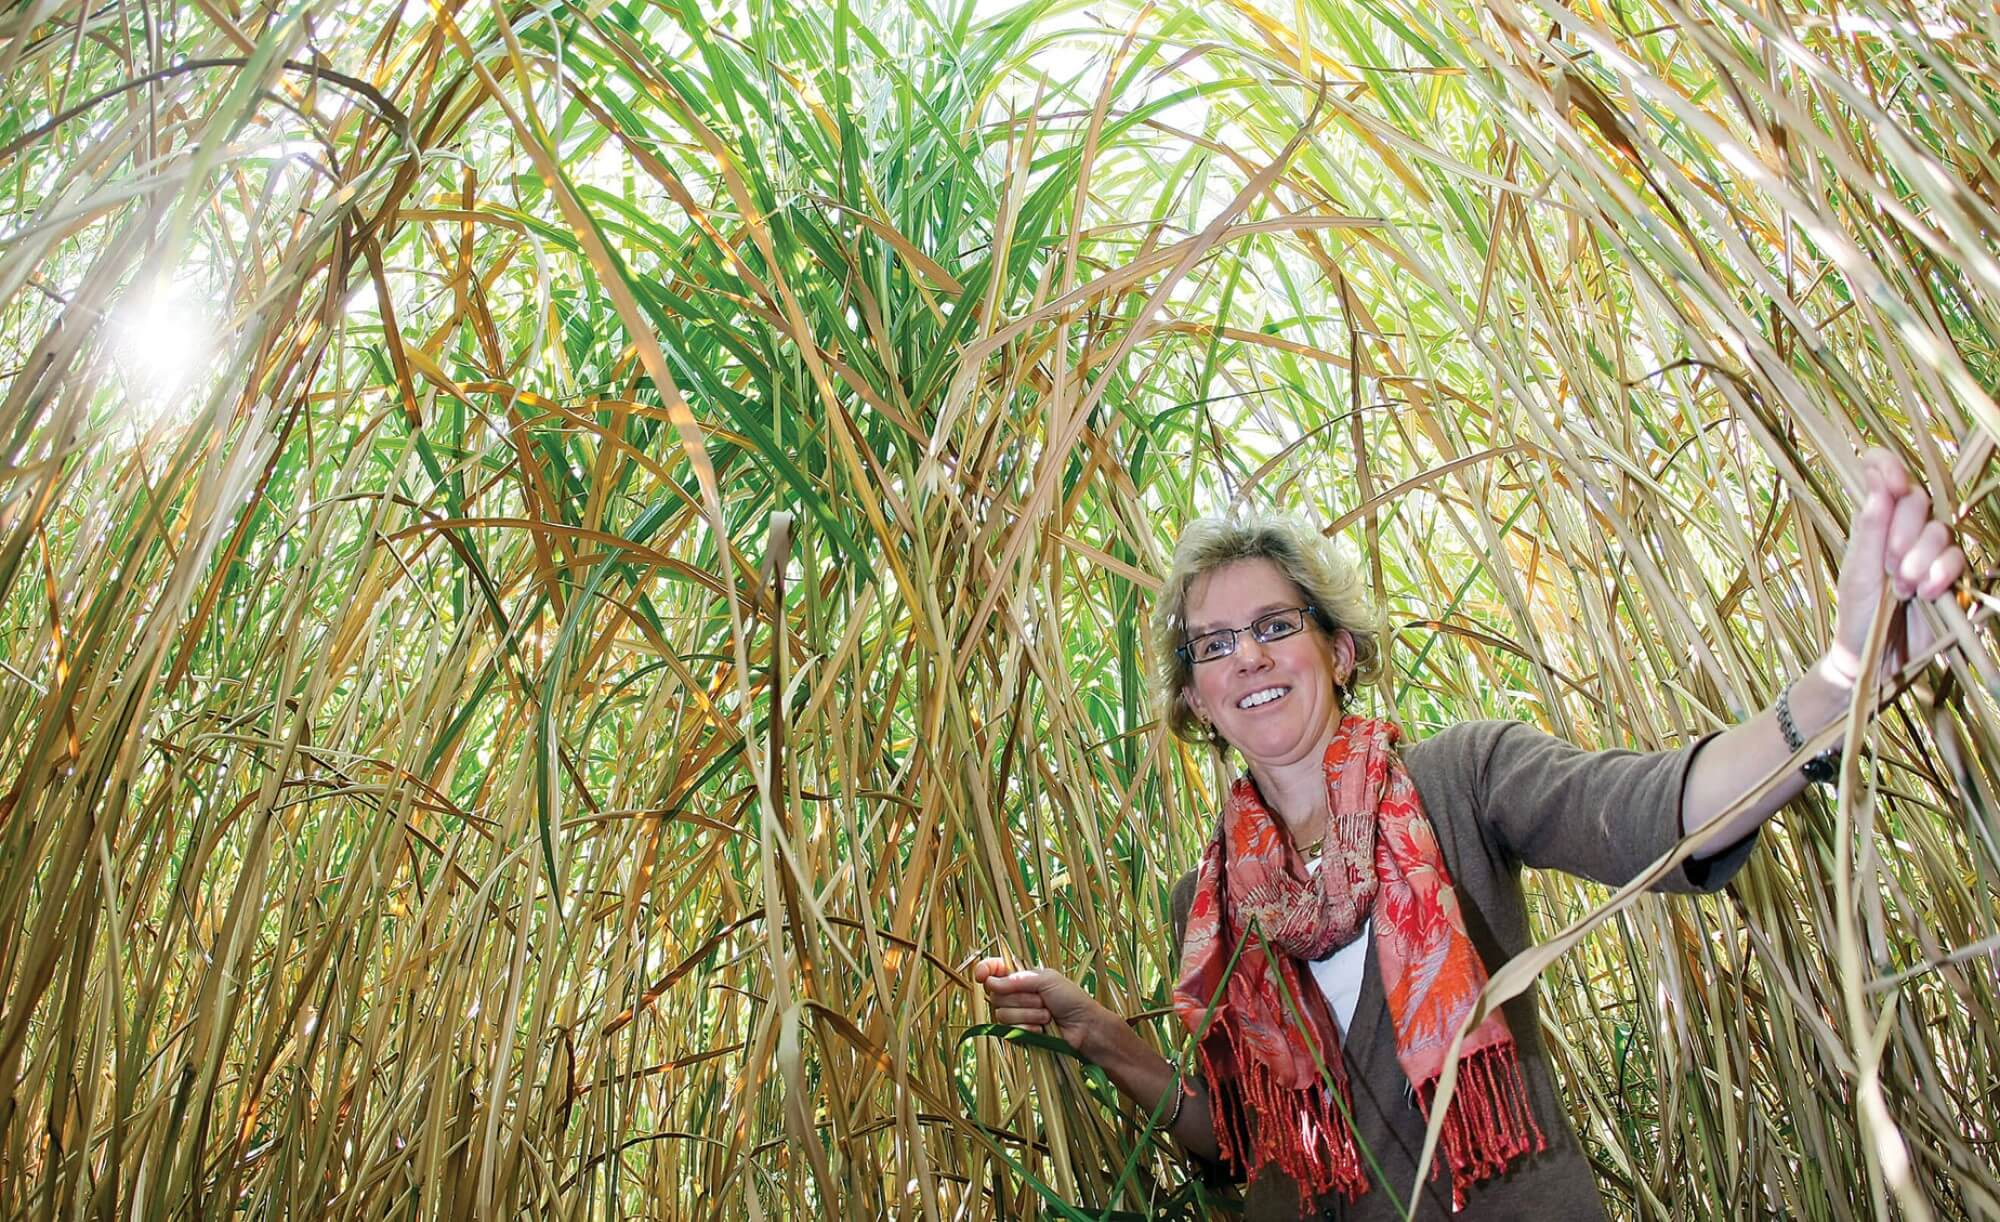 Sylvie Brouder in a stand of giant Miscanthus grass, used in biofuel production.